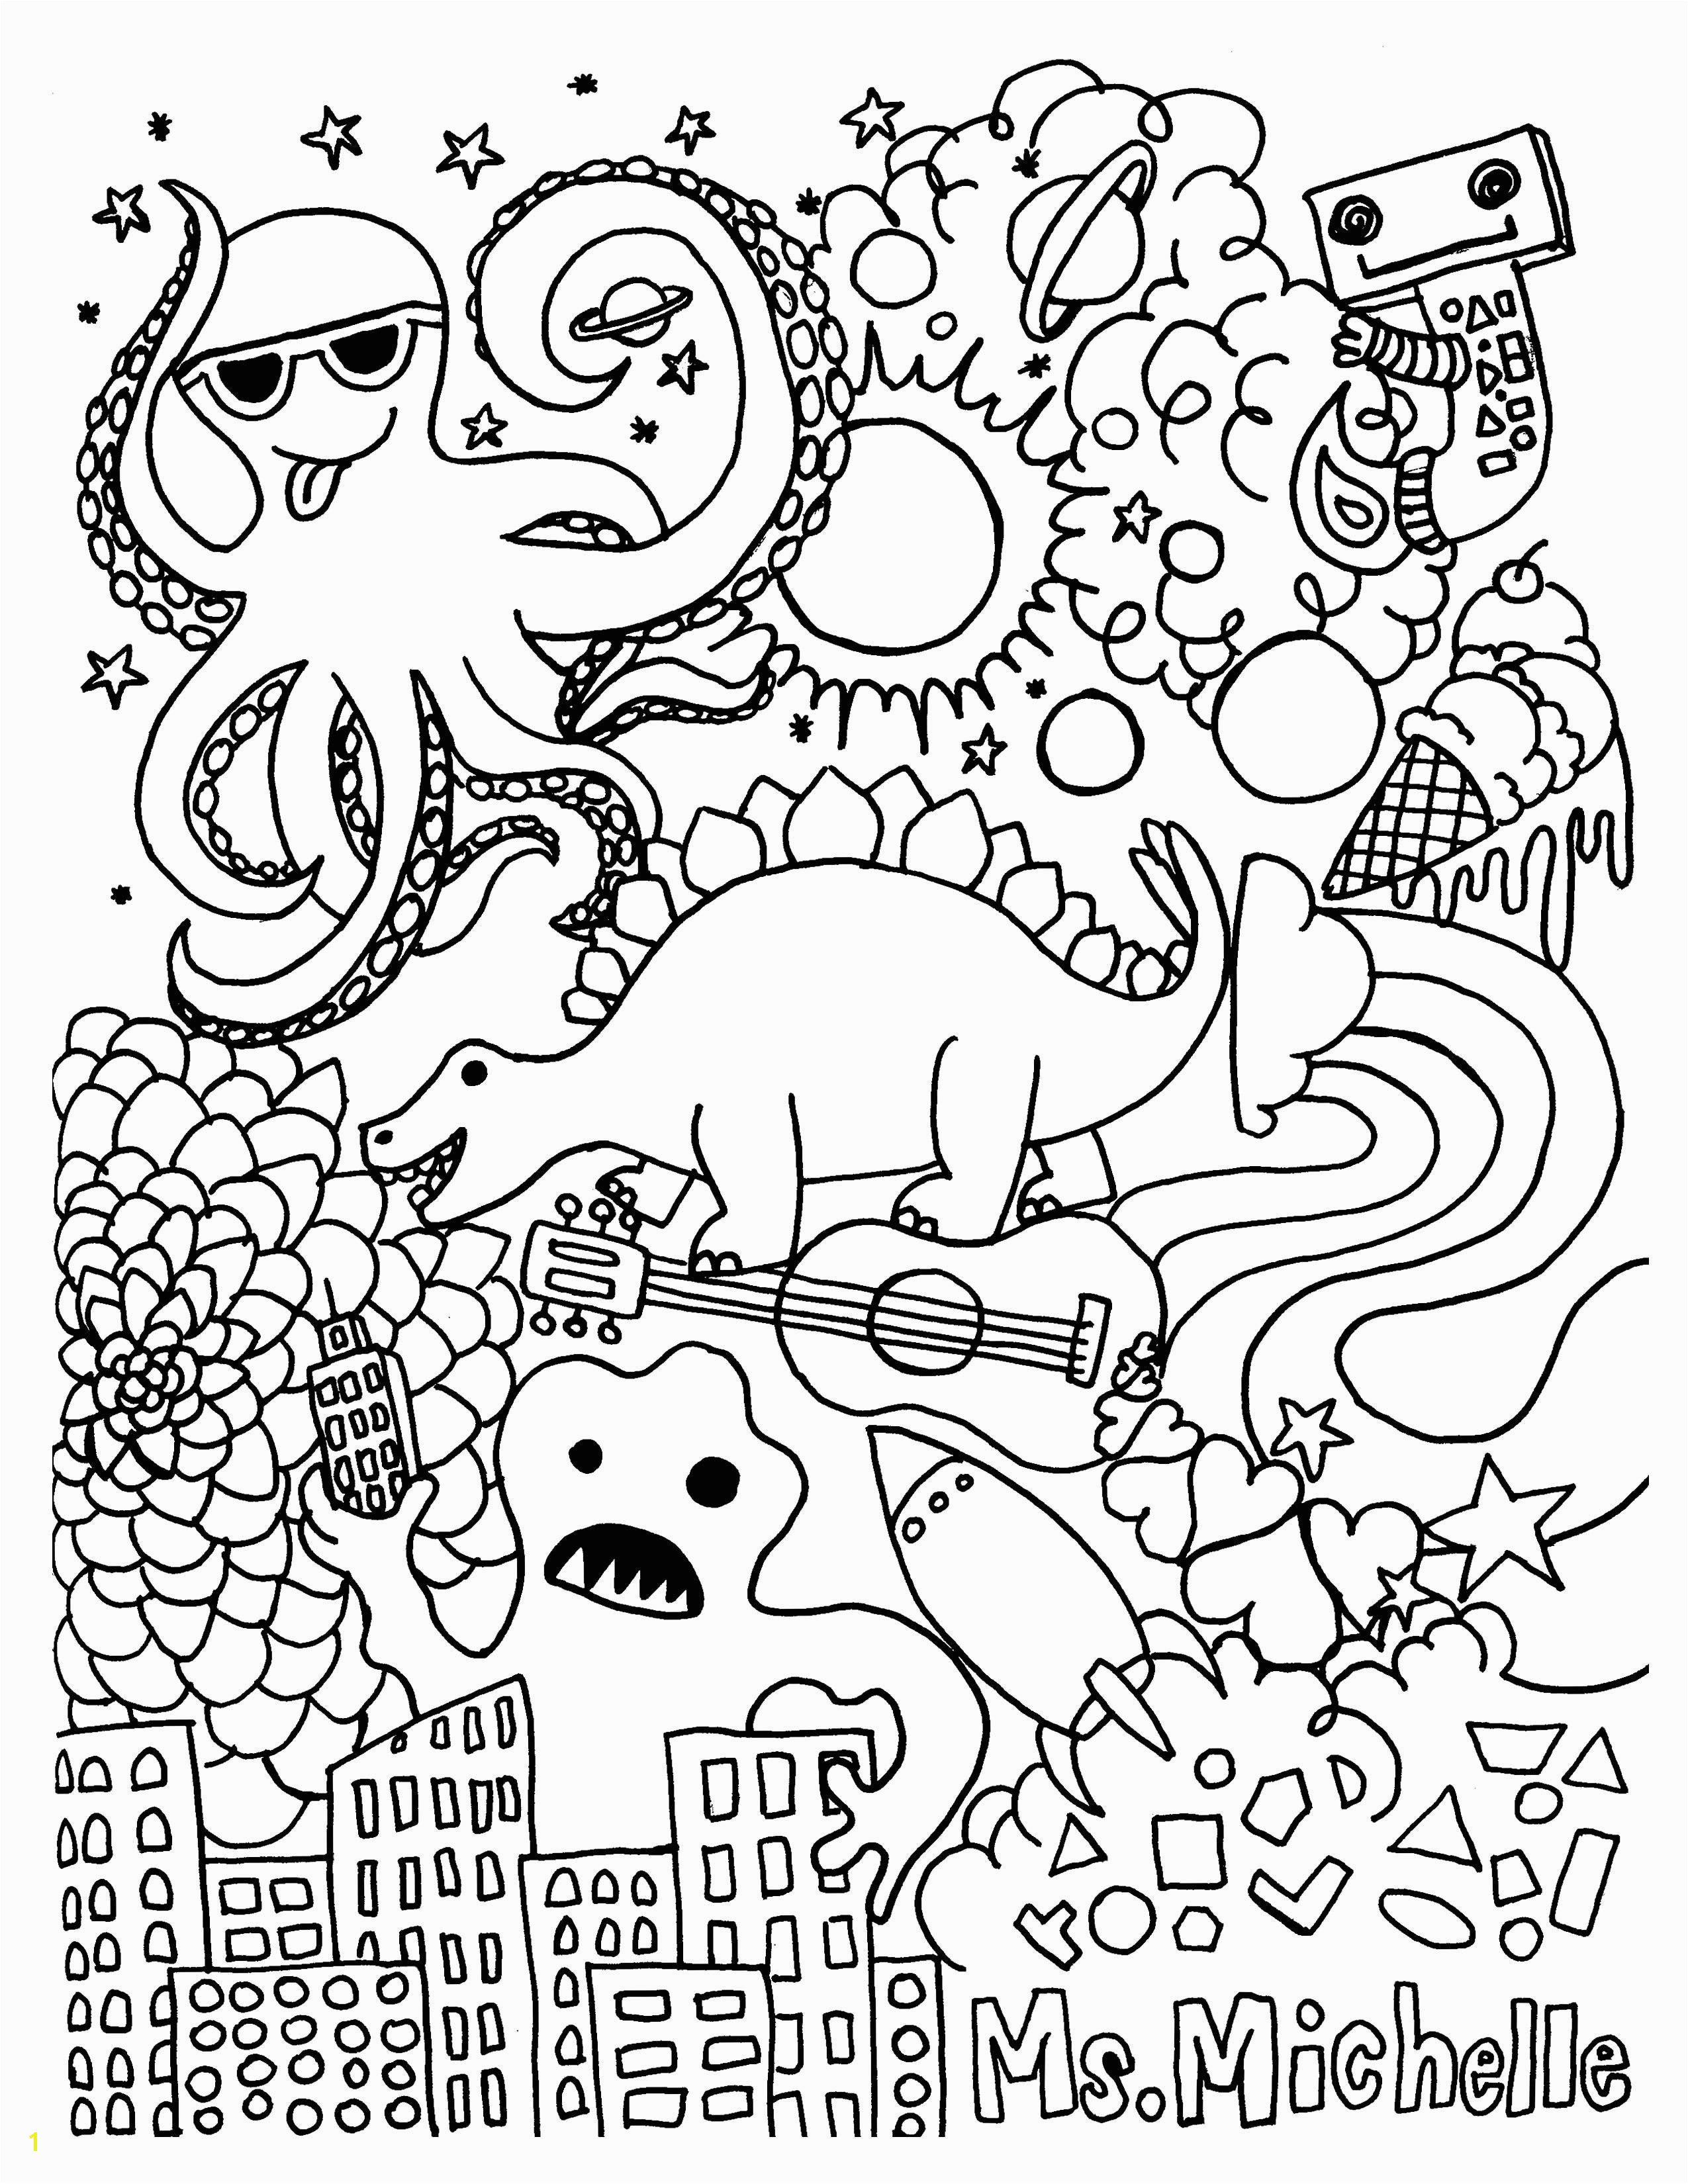 3rd Grade Coloring Pages Printable 2nd Grade Worksheets Coloring Valid Showing Kindness Coloring Pages